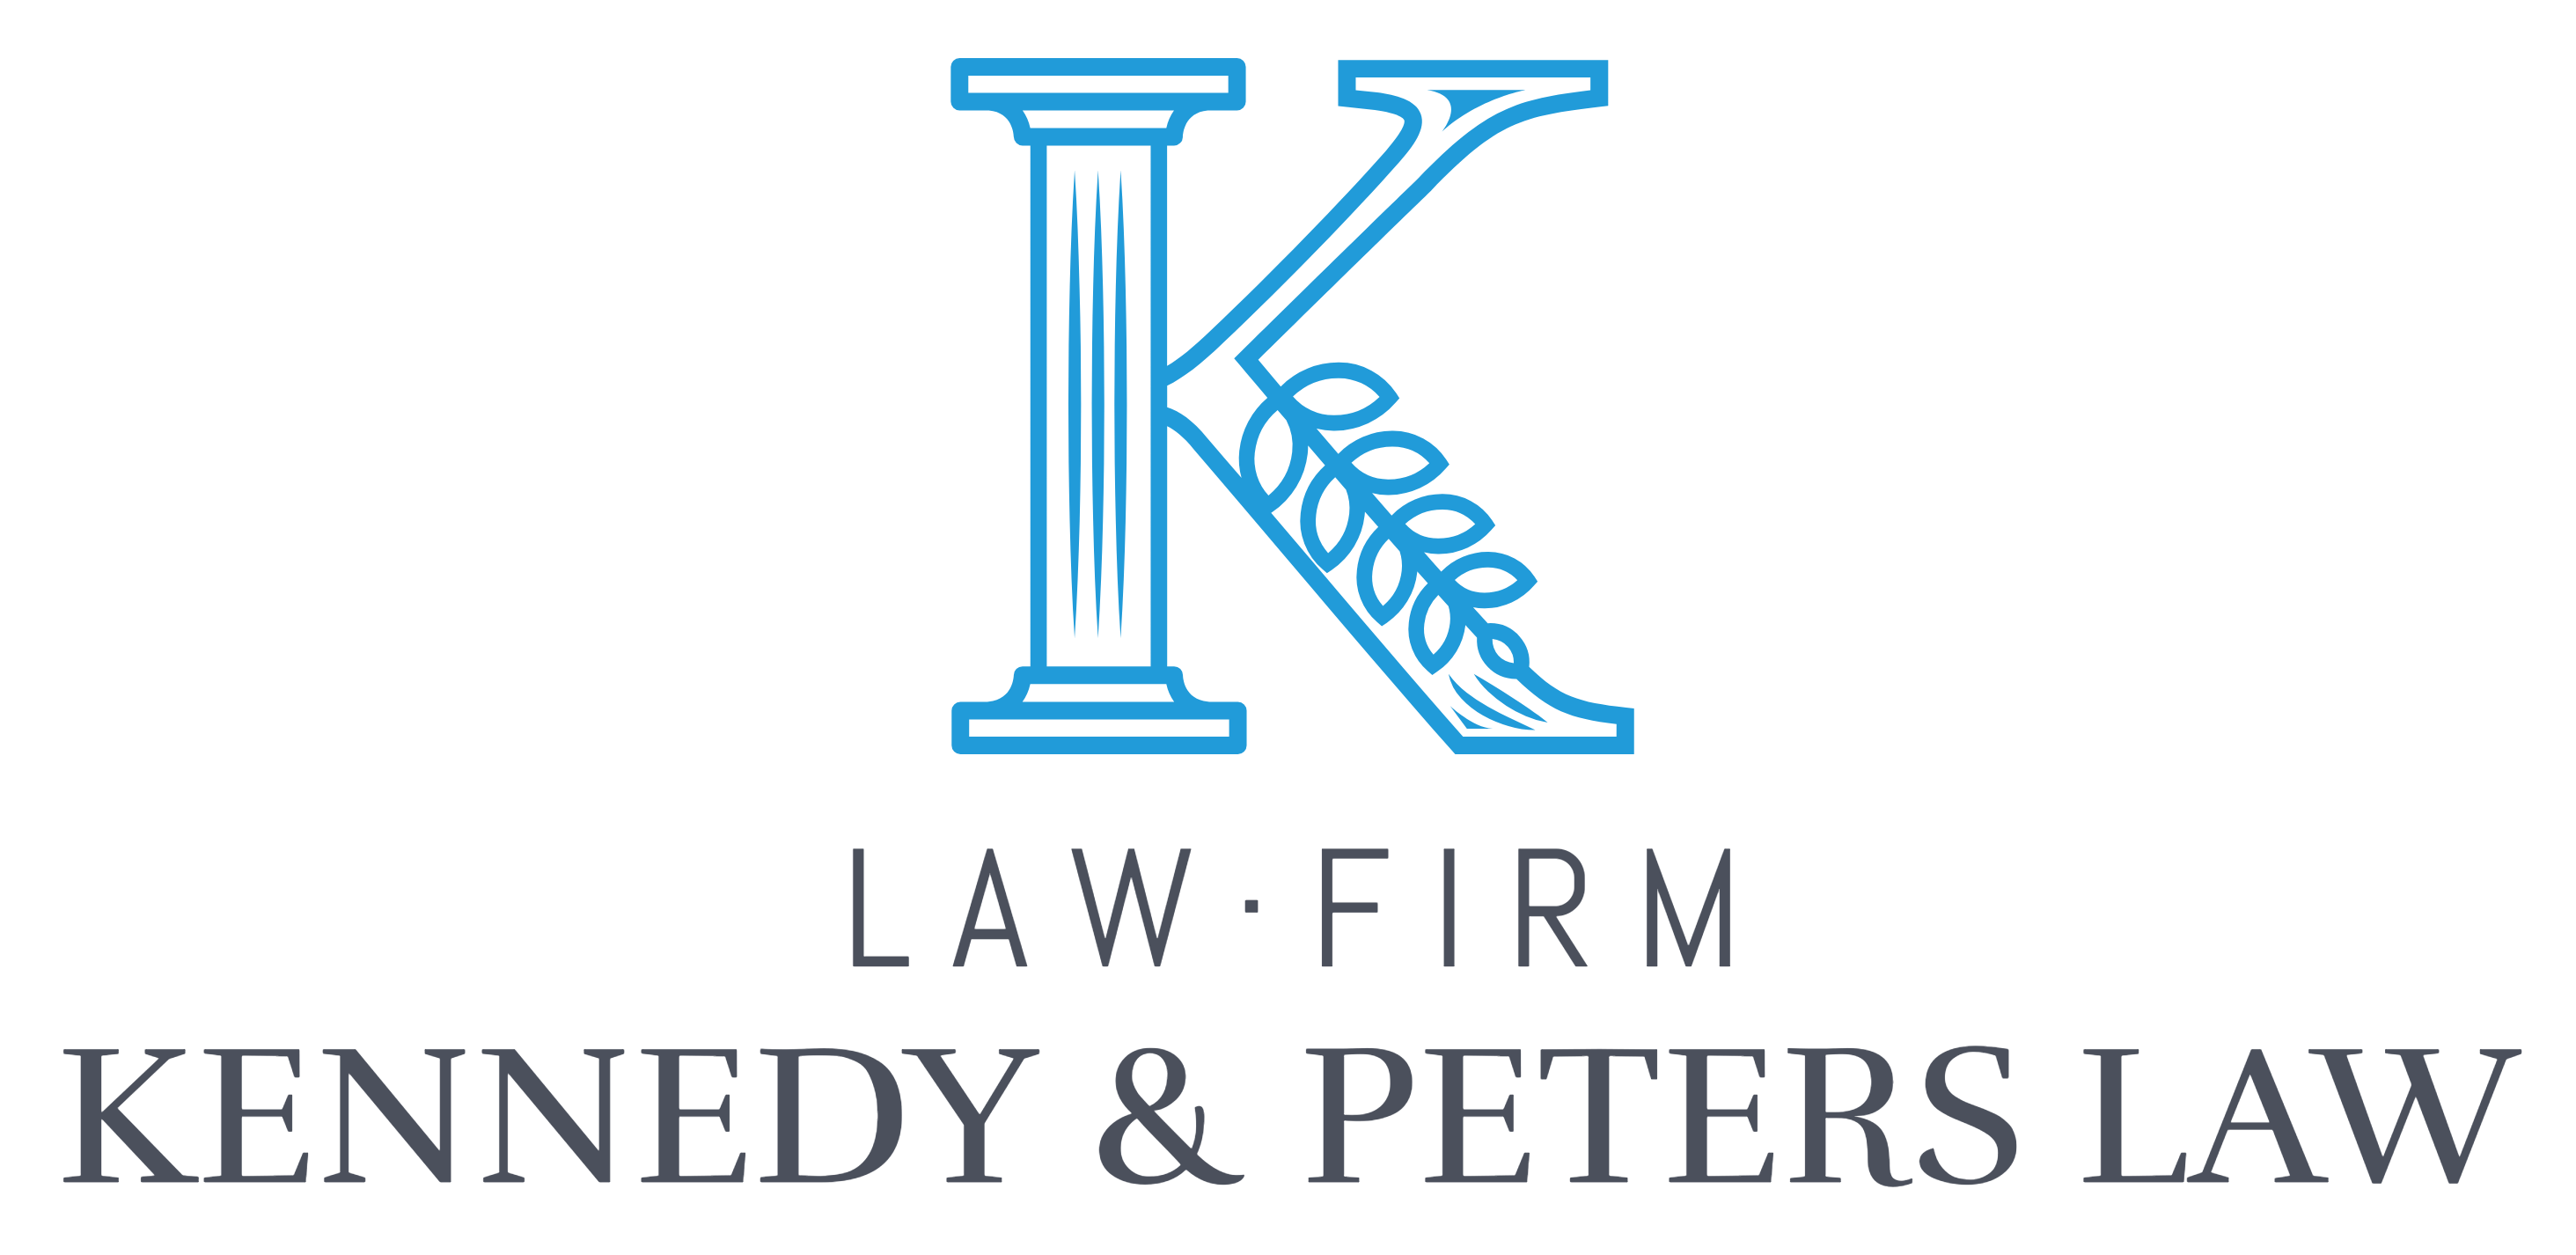 Kennedy & Peters Law